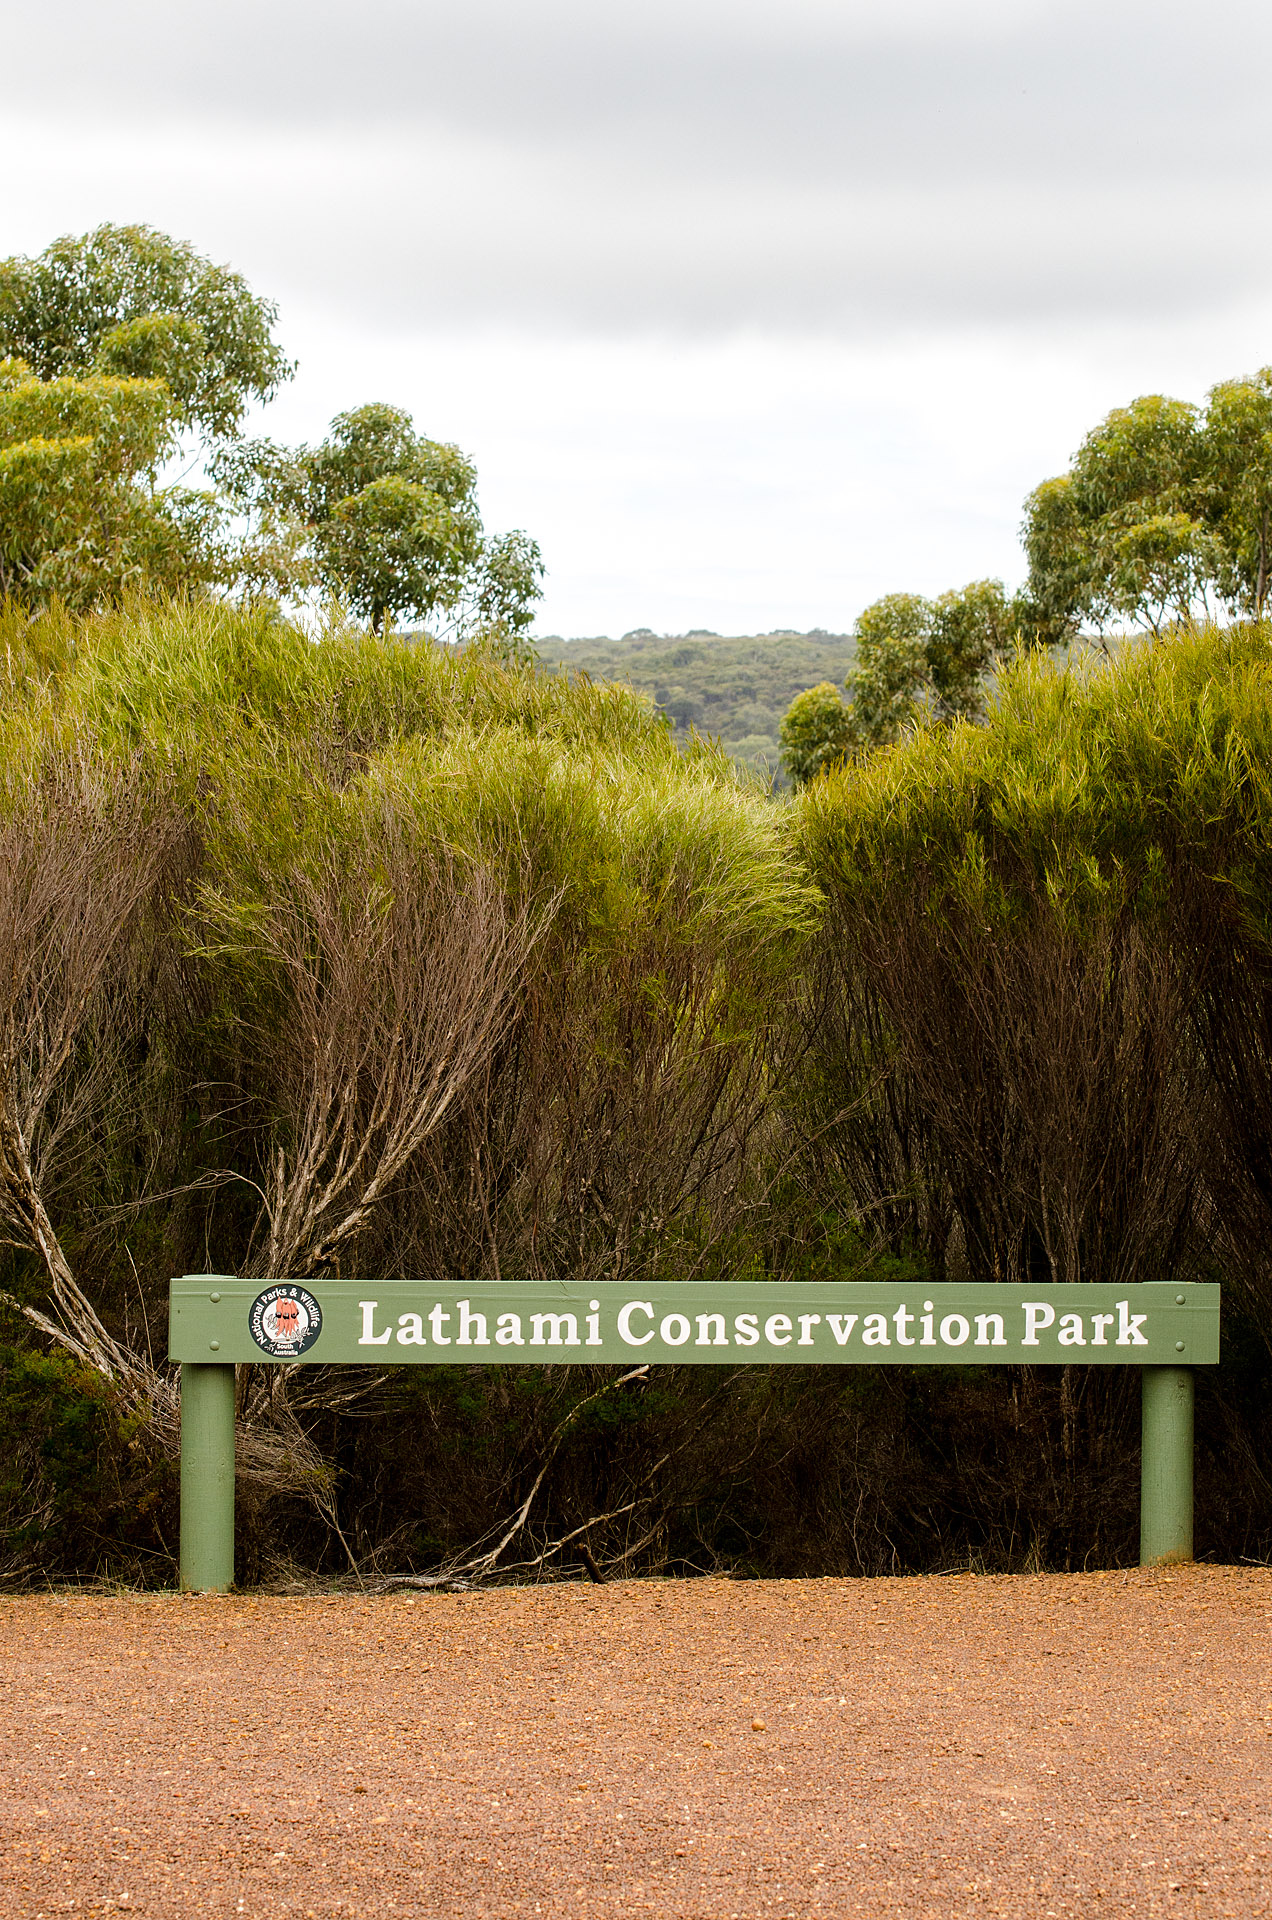 Lathami Conservation Park